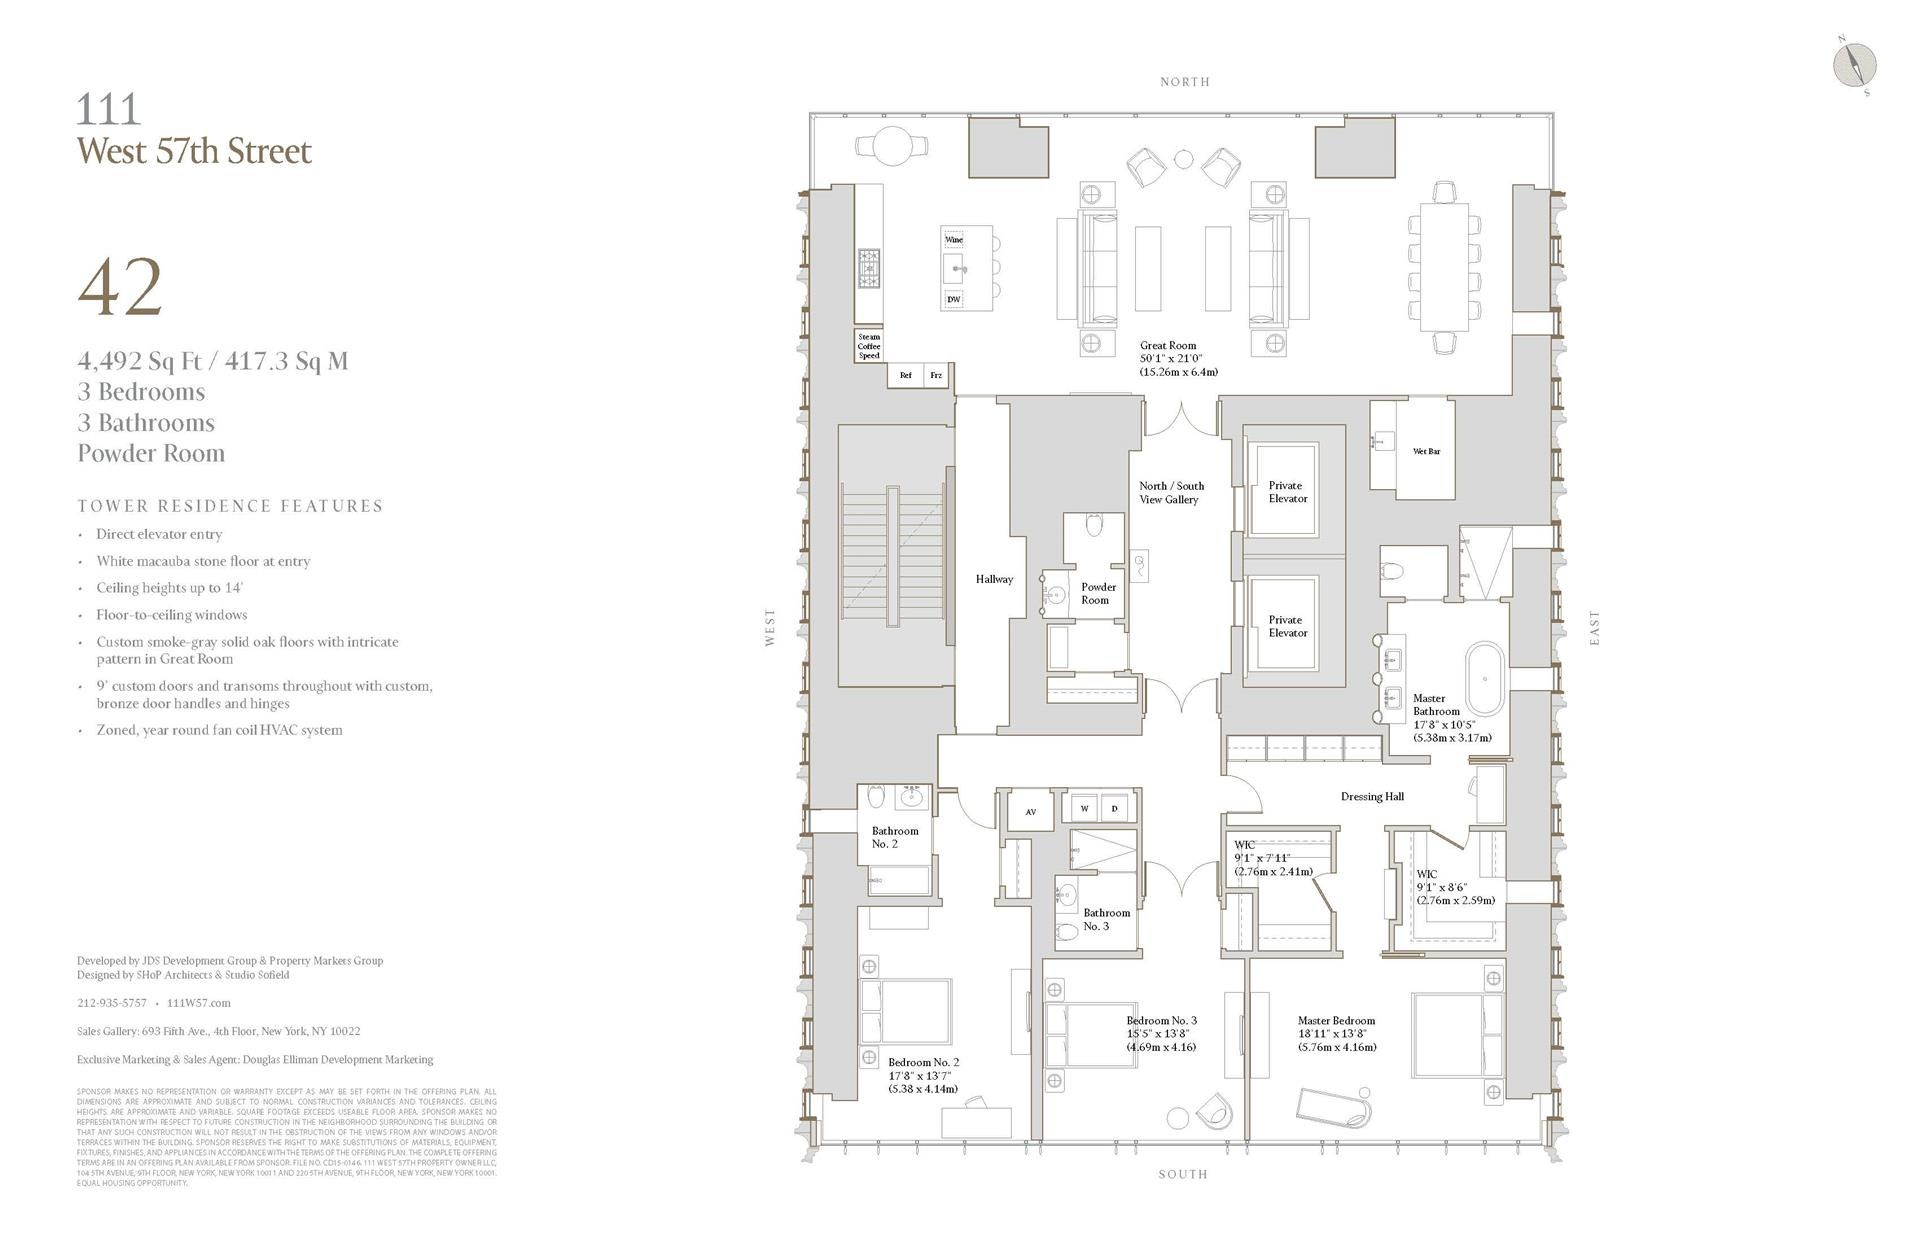 Floor plan of 111 West 57th St, 42 - Central Park South, New York